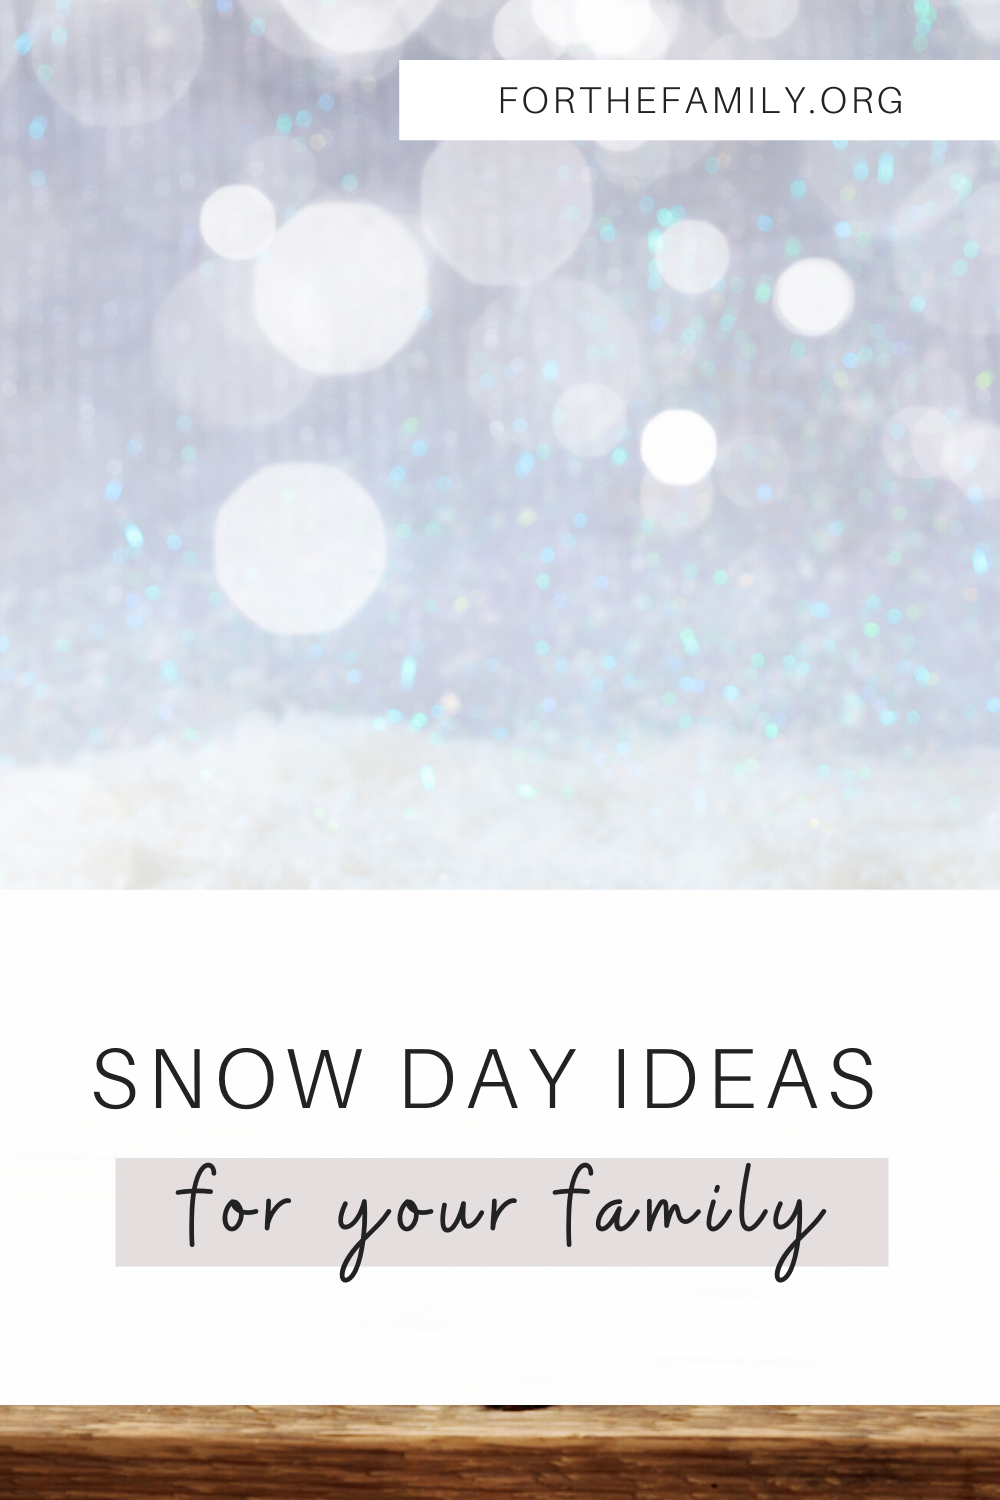 Growing up in Michigan, snow days are all too familiar! Of course, the kids are pumped, but as a parent, we can soon discover that keeping everyone occupied can be a bit of a challenge. Here are a few ideas and recipes to help your kiddos pass the time and to save yourself some sanity!